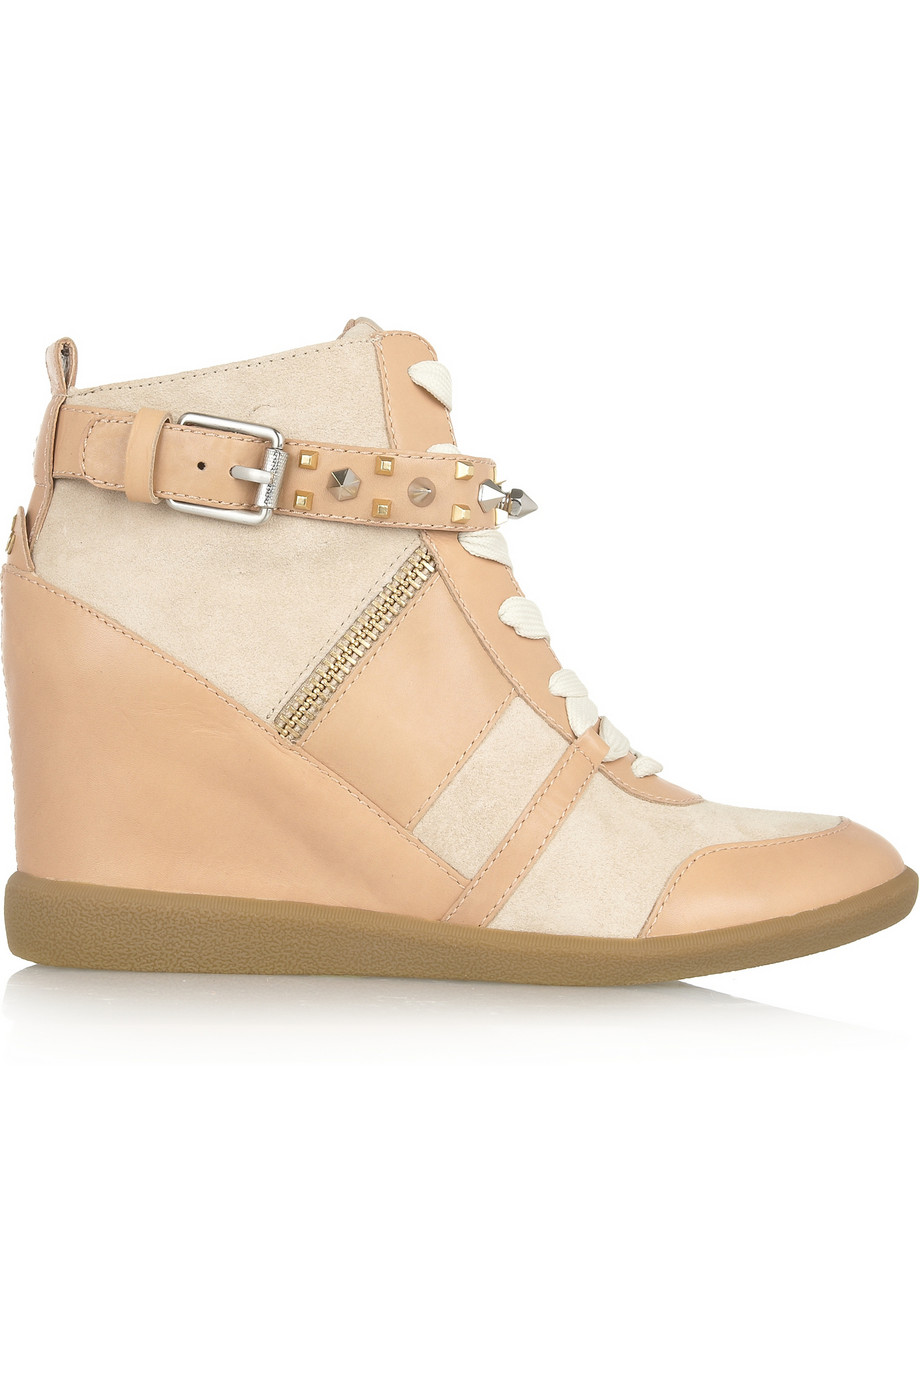 4981a6a2e0ace0 Sam Edelman Brogan Suede and Leather Wedge Sneakers in Natural - Lyst